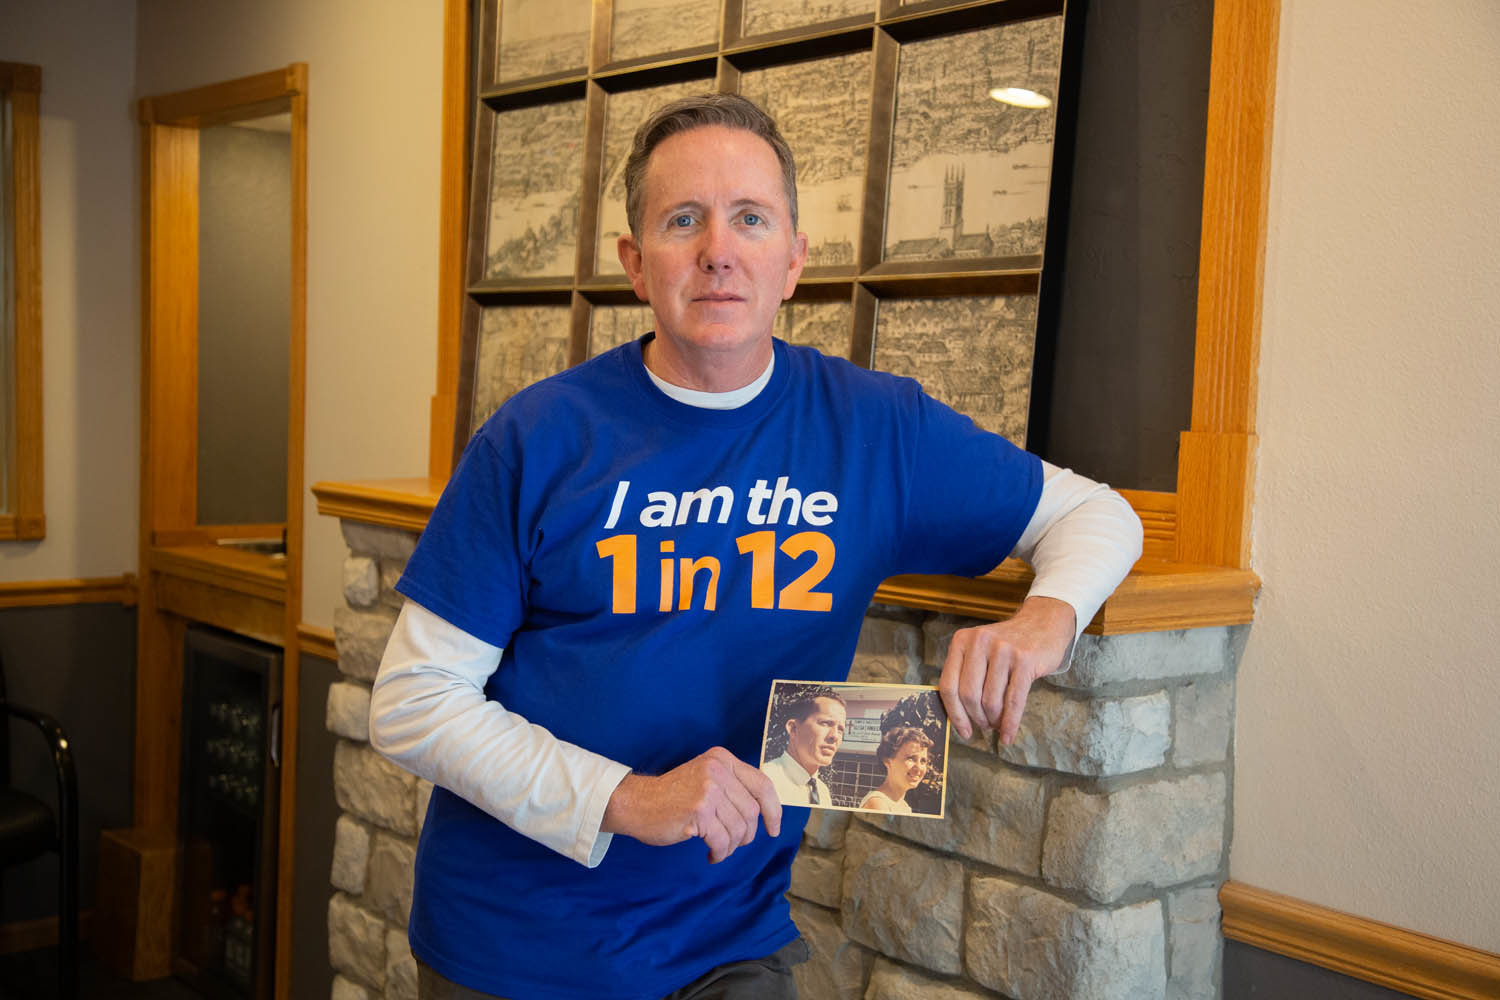 David Potter says after his parents were murdered when he was 10 years old, a place like Lost & Found Grief Center would have helped him work through his pain. That's why he's supporting the nonprofit today through the 1 in 12 campaign.